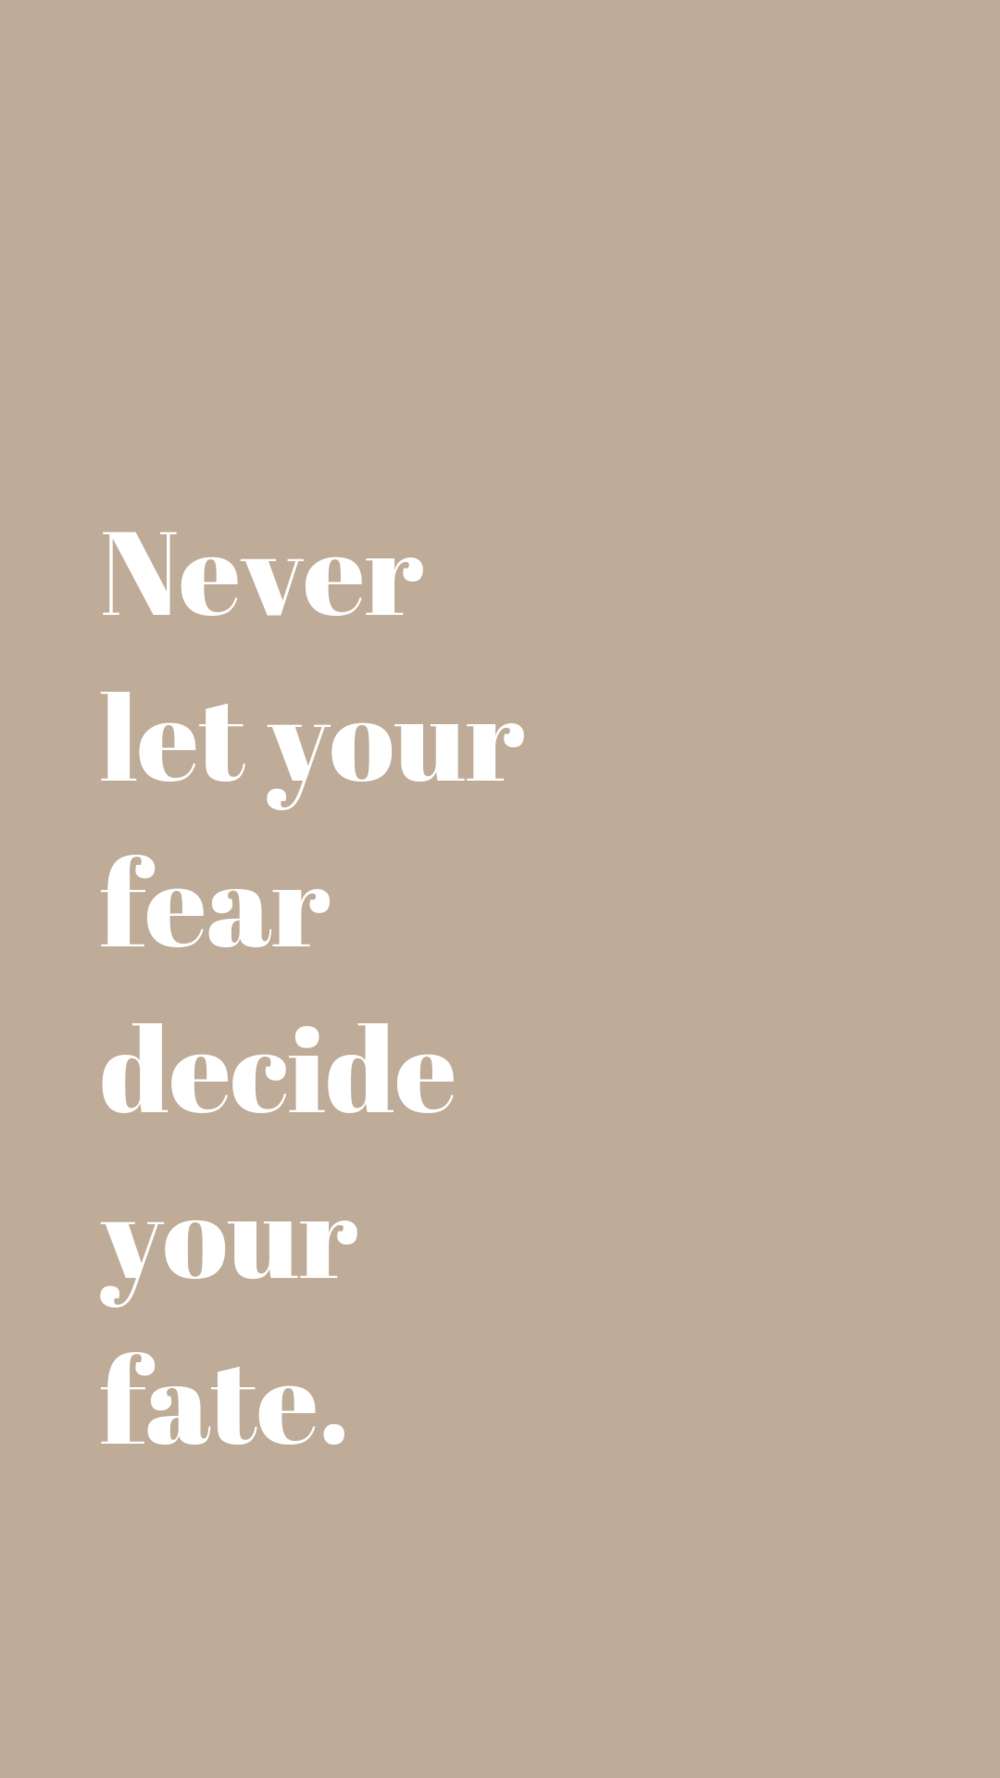 Never let your fear decide your fate | Empowering Quotes for Your Phone Screen Background | Miranda Schroeder Blog | www.mirandaschroeder.com